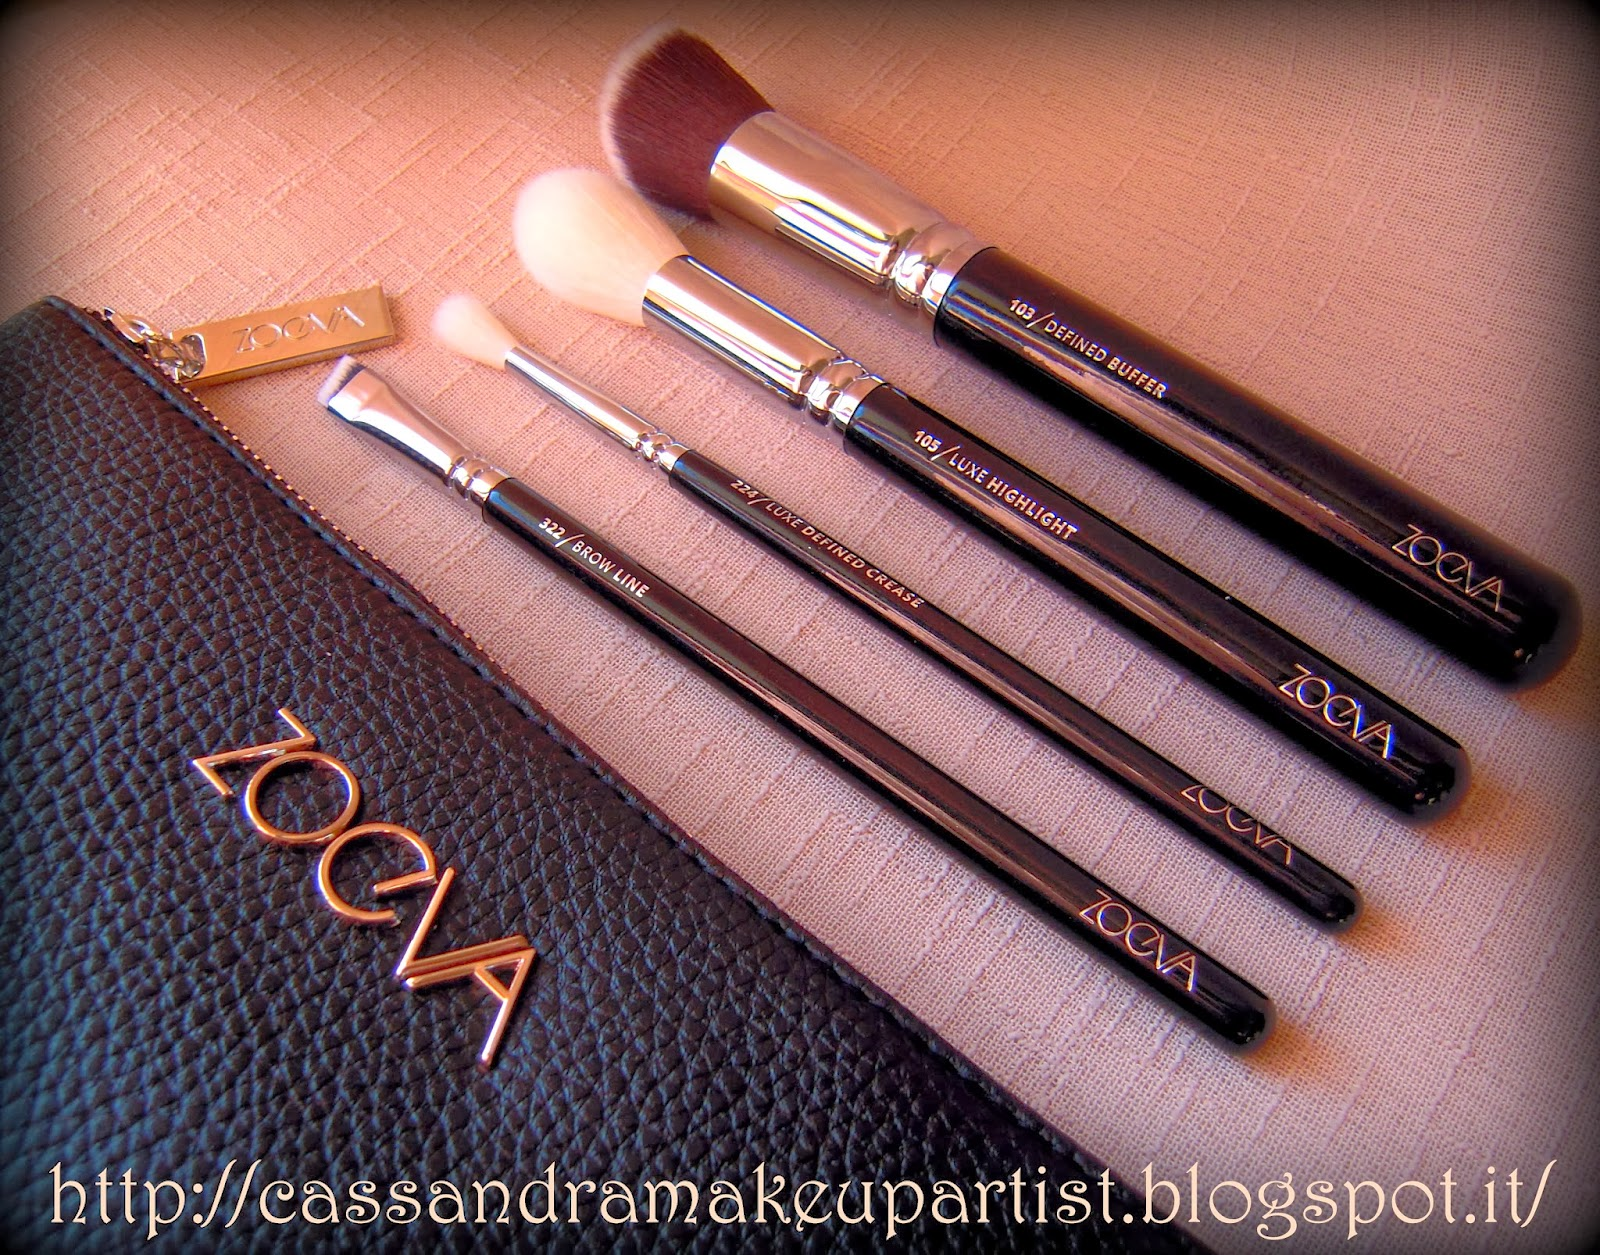 ZOEVA - Nuovi Pennelli 2014 - brush clutch - new brushes brush - 100 Luxe Face Finish - 103 Defined Buffer - 105 Luxe Highlight - 109 Face Paint - 126 Luxe Cheek Finish - 221 Luxe Soft Crease - 224 Luxe Defined Crease - 322 Brow Line - review - recensione - prezzo - price -